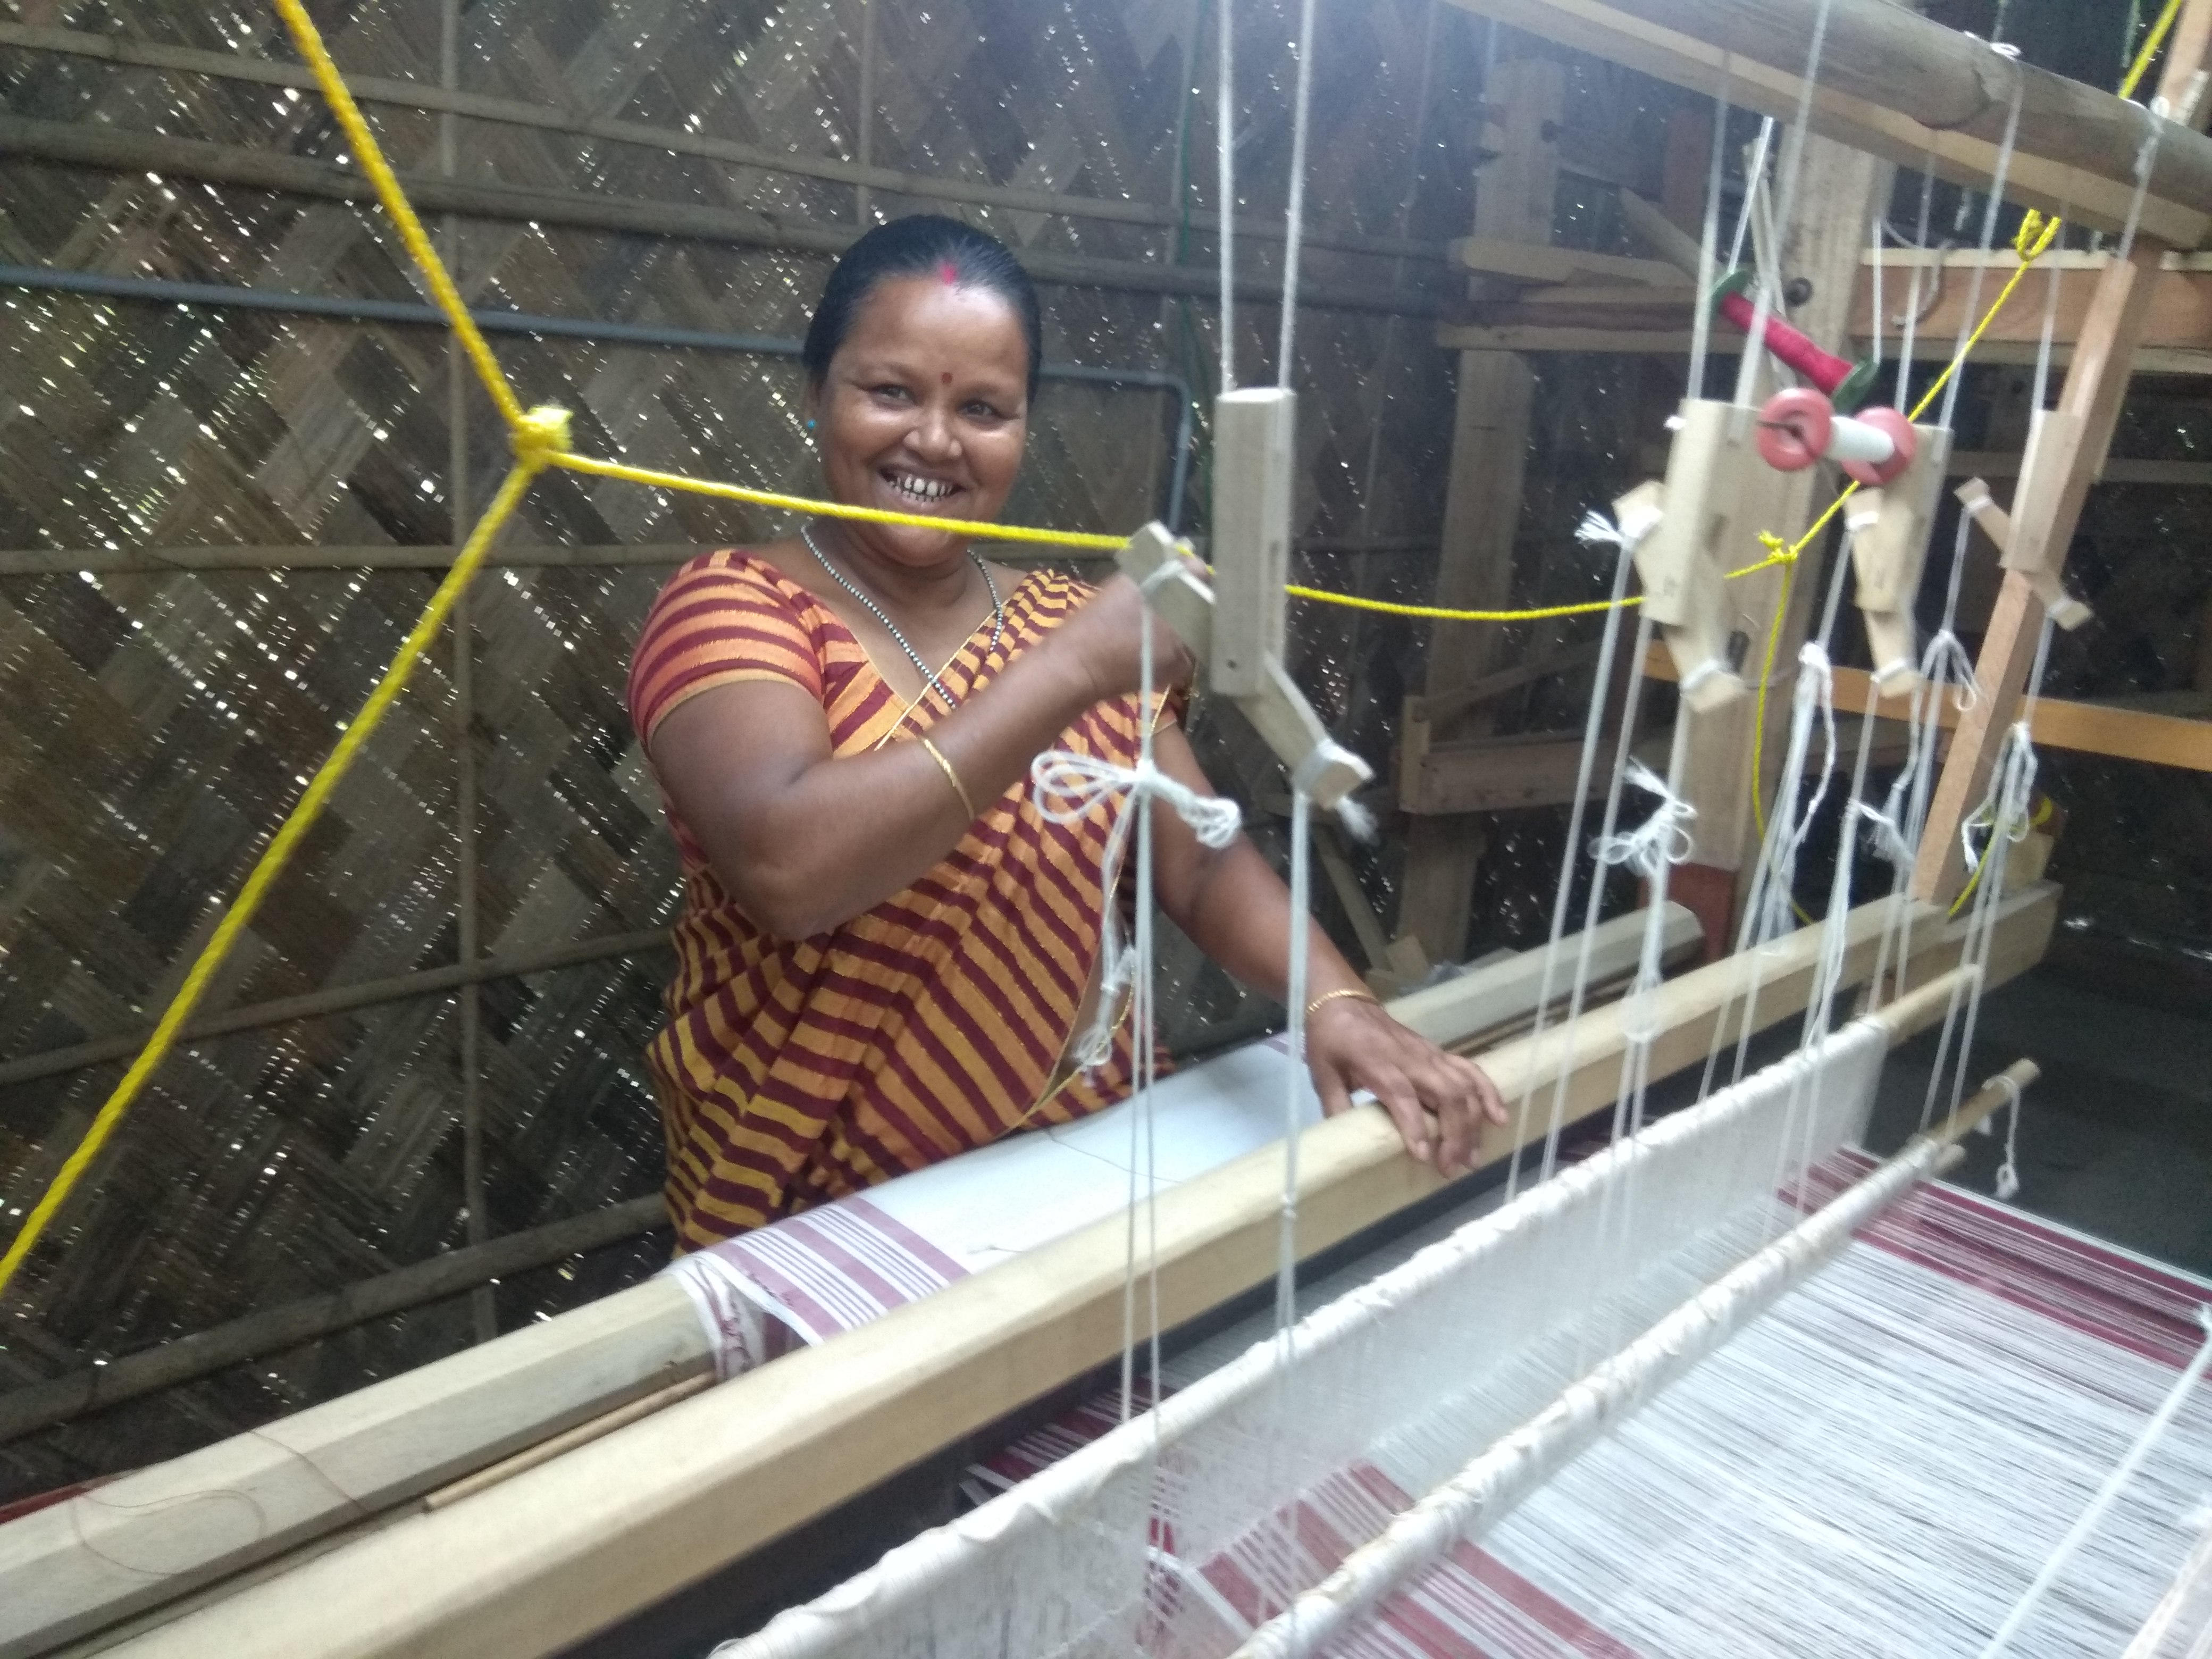 Namita Das from Assam has been weaving since she was a teenager but she only wove for self consumption. It was only after joining the Antaran centre that she realised she could actually sell and earn money